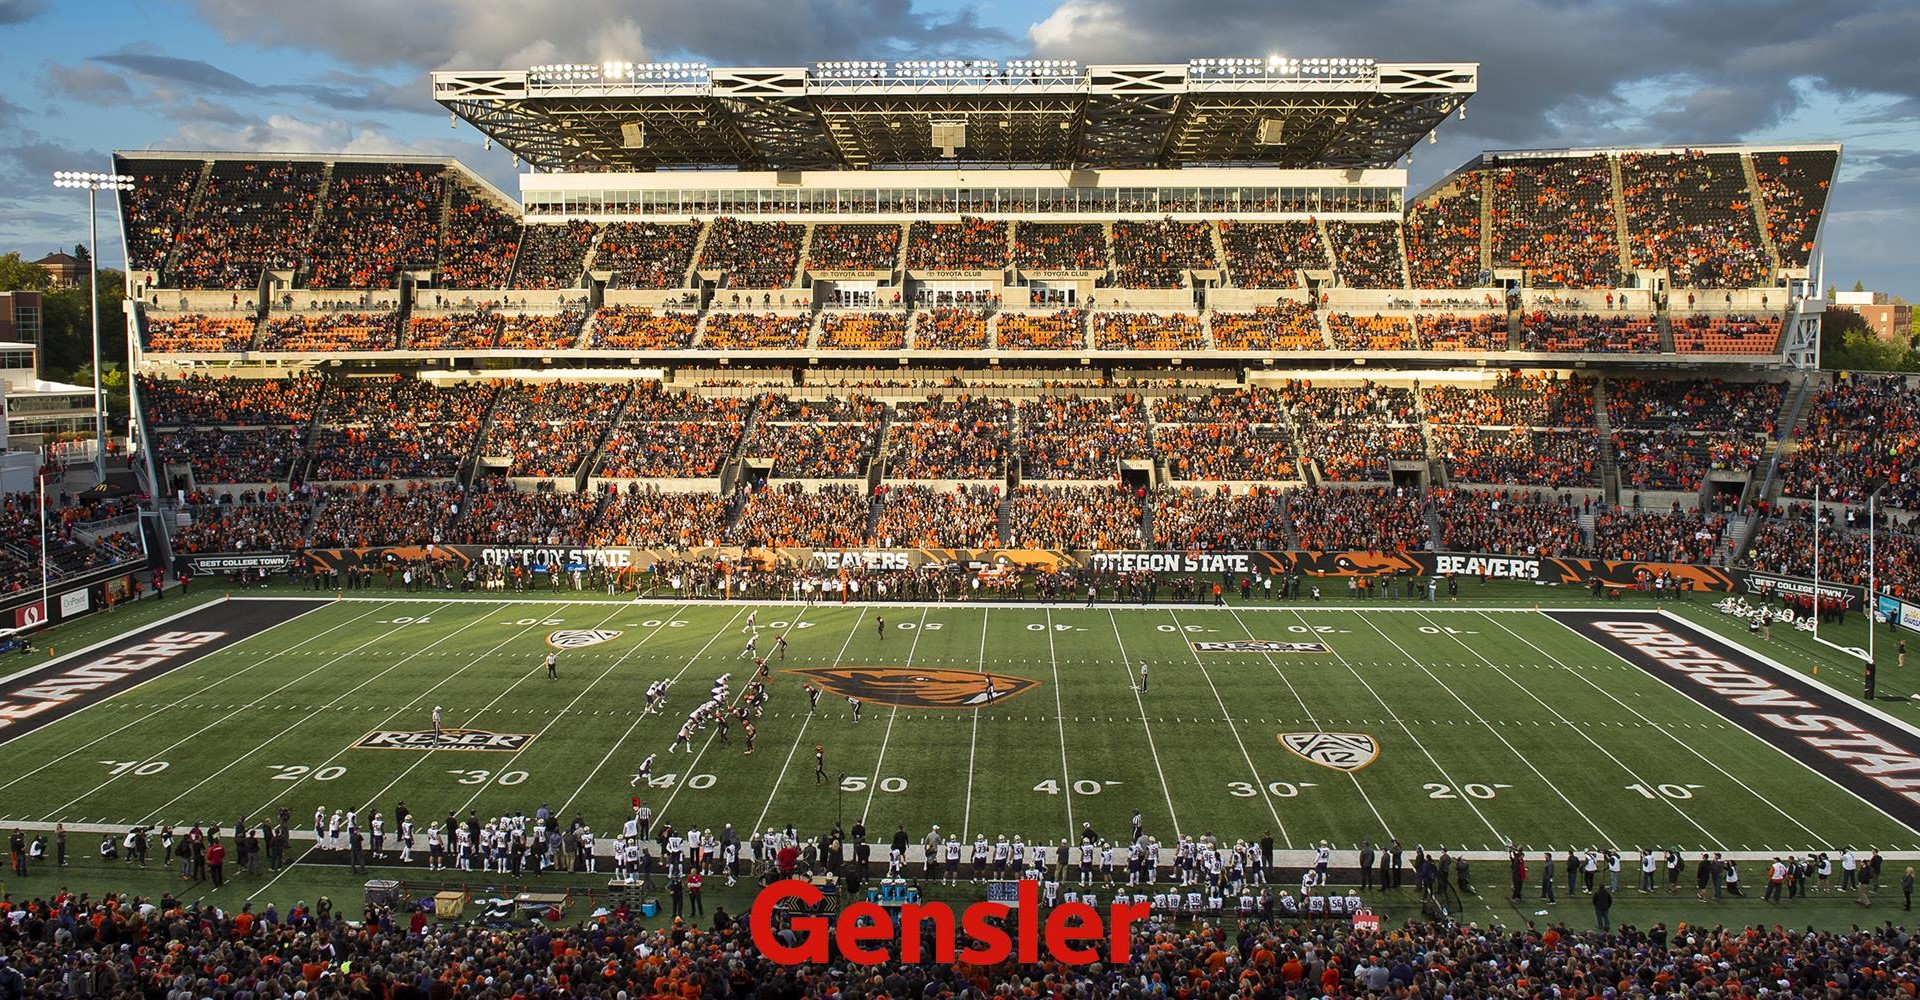 OSU and Gensler Partner for Facilities Plan